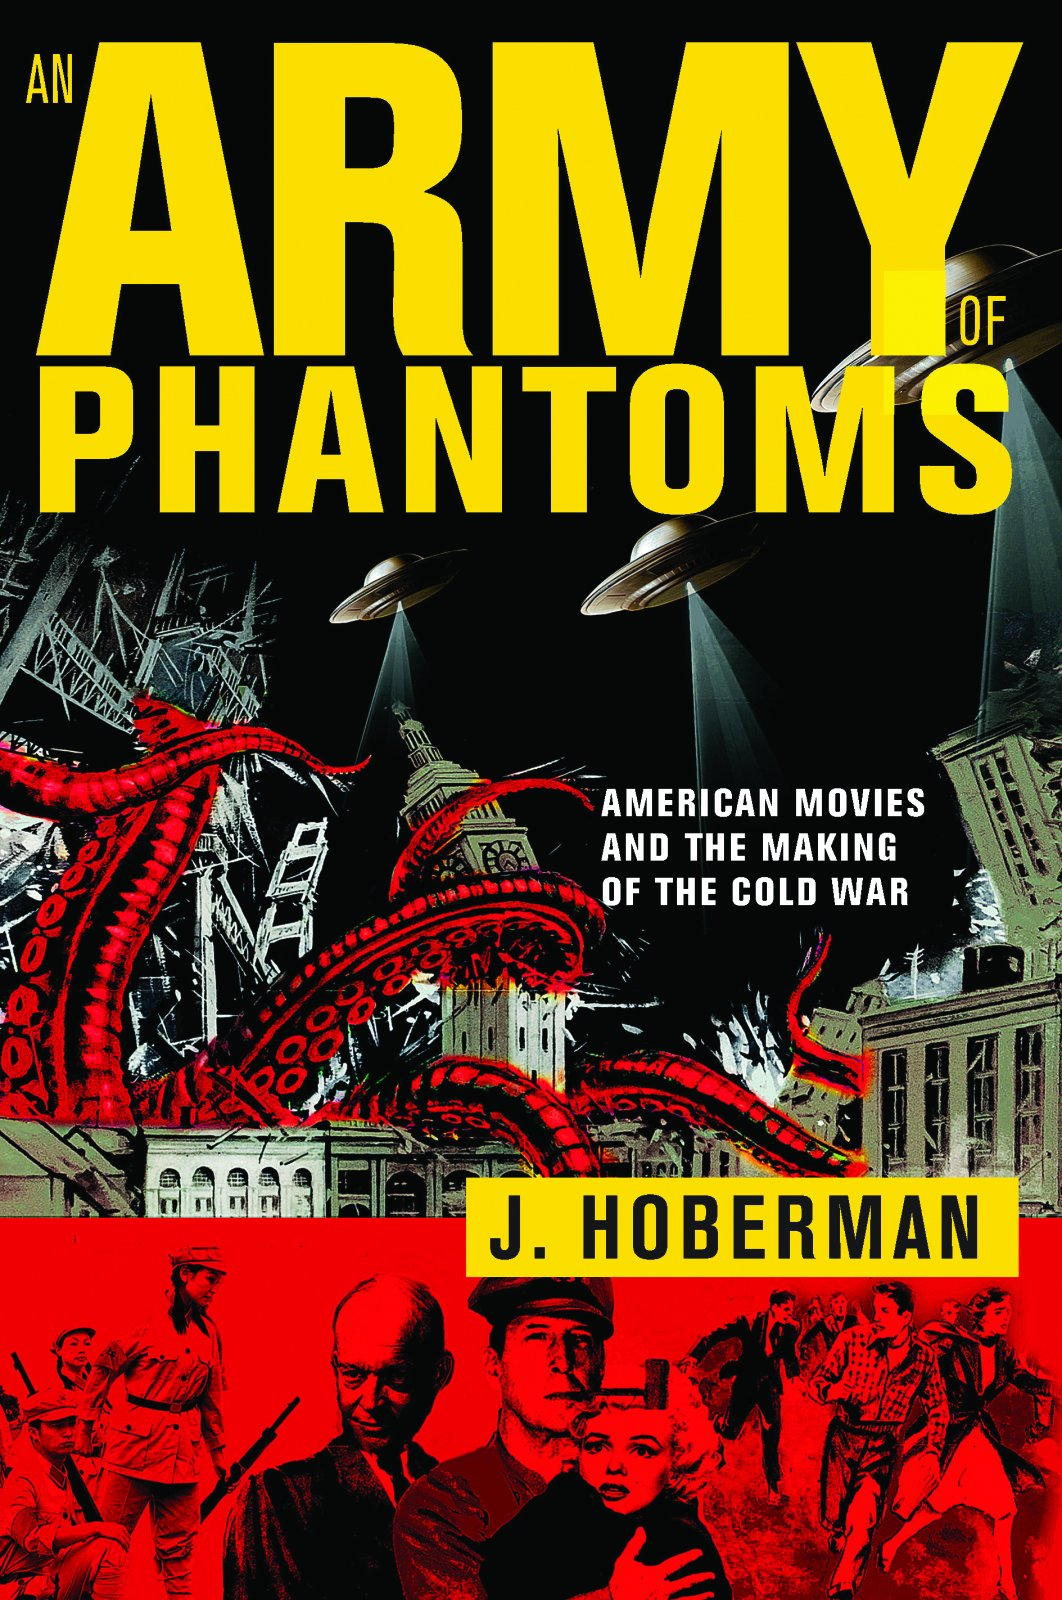 An army of phantoms american movies and the making of the cold war an army of phantoms american movies and the making of the cold war j hoberman 9781595588333 amazon books fandeluxe Image collections